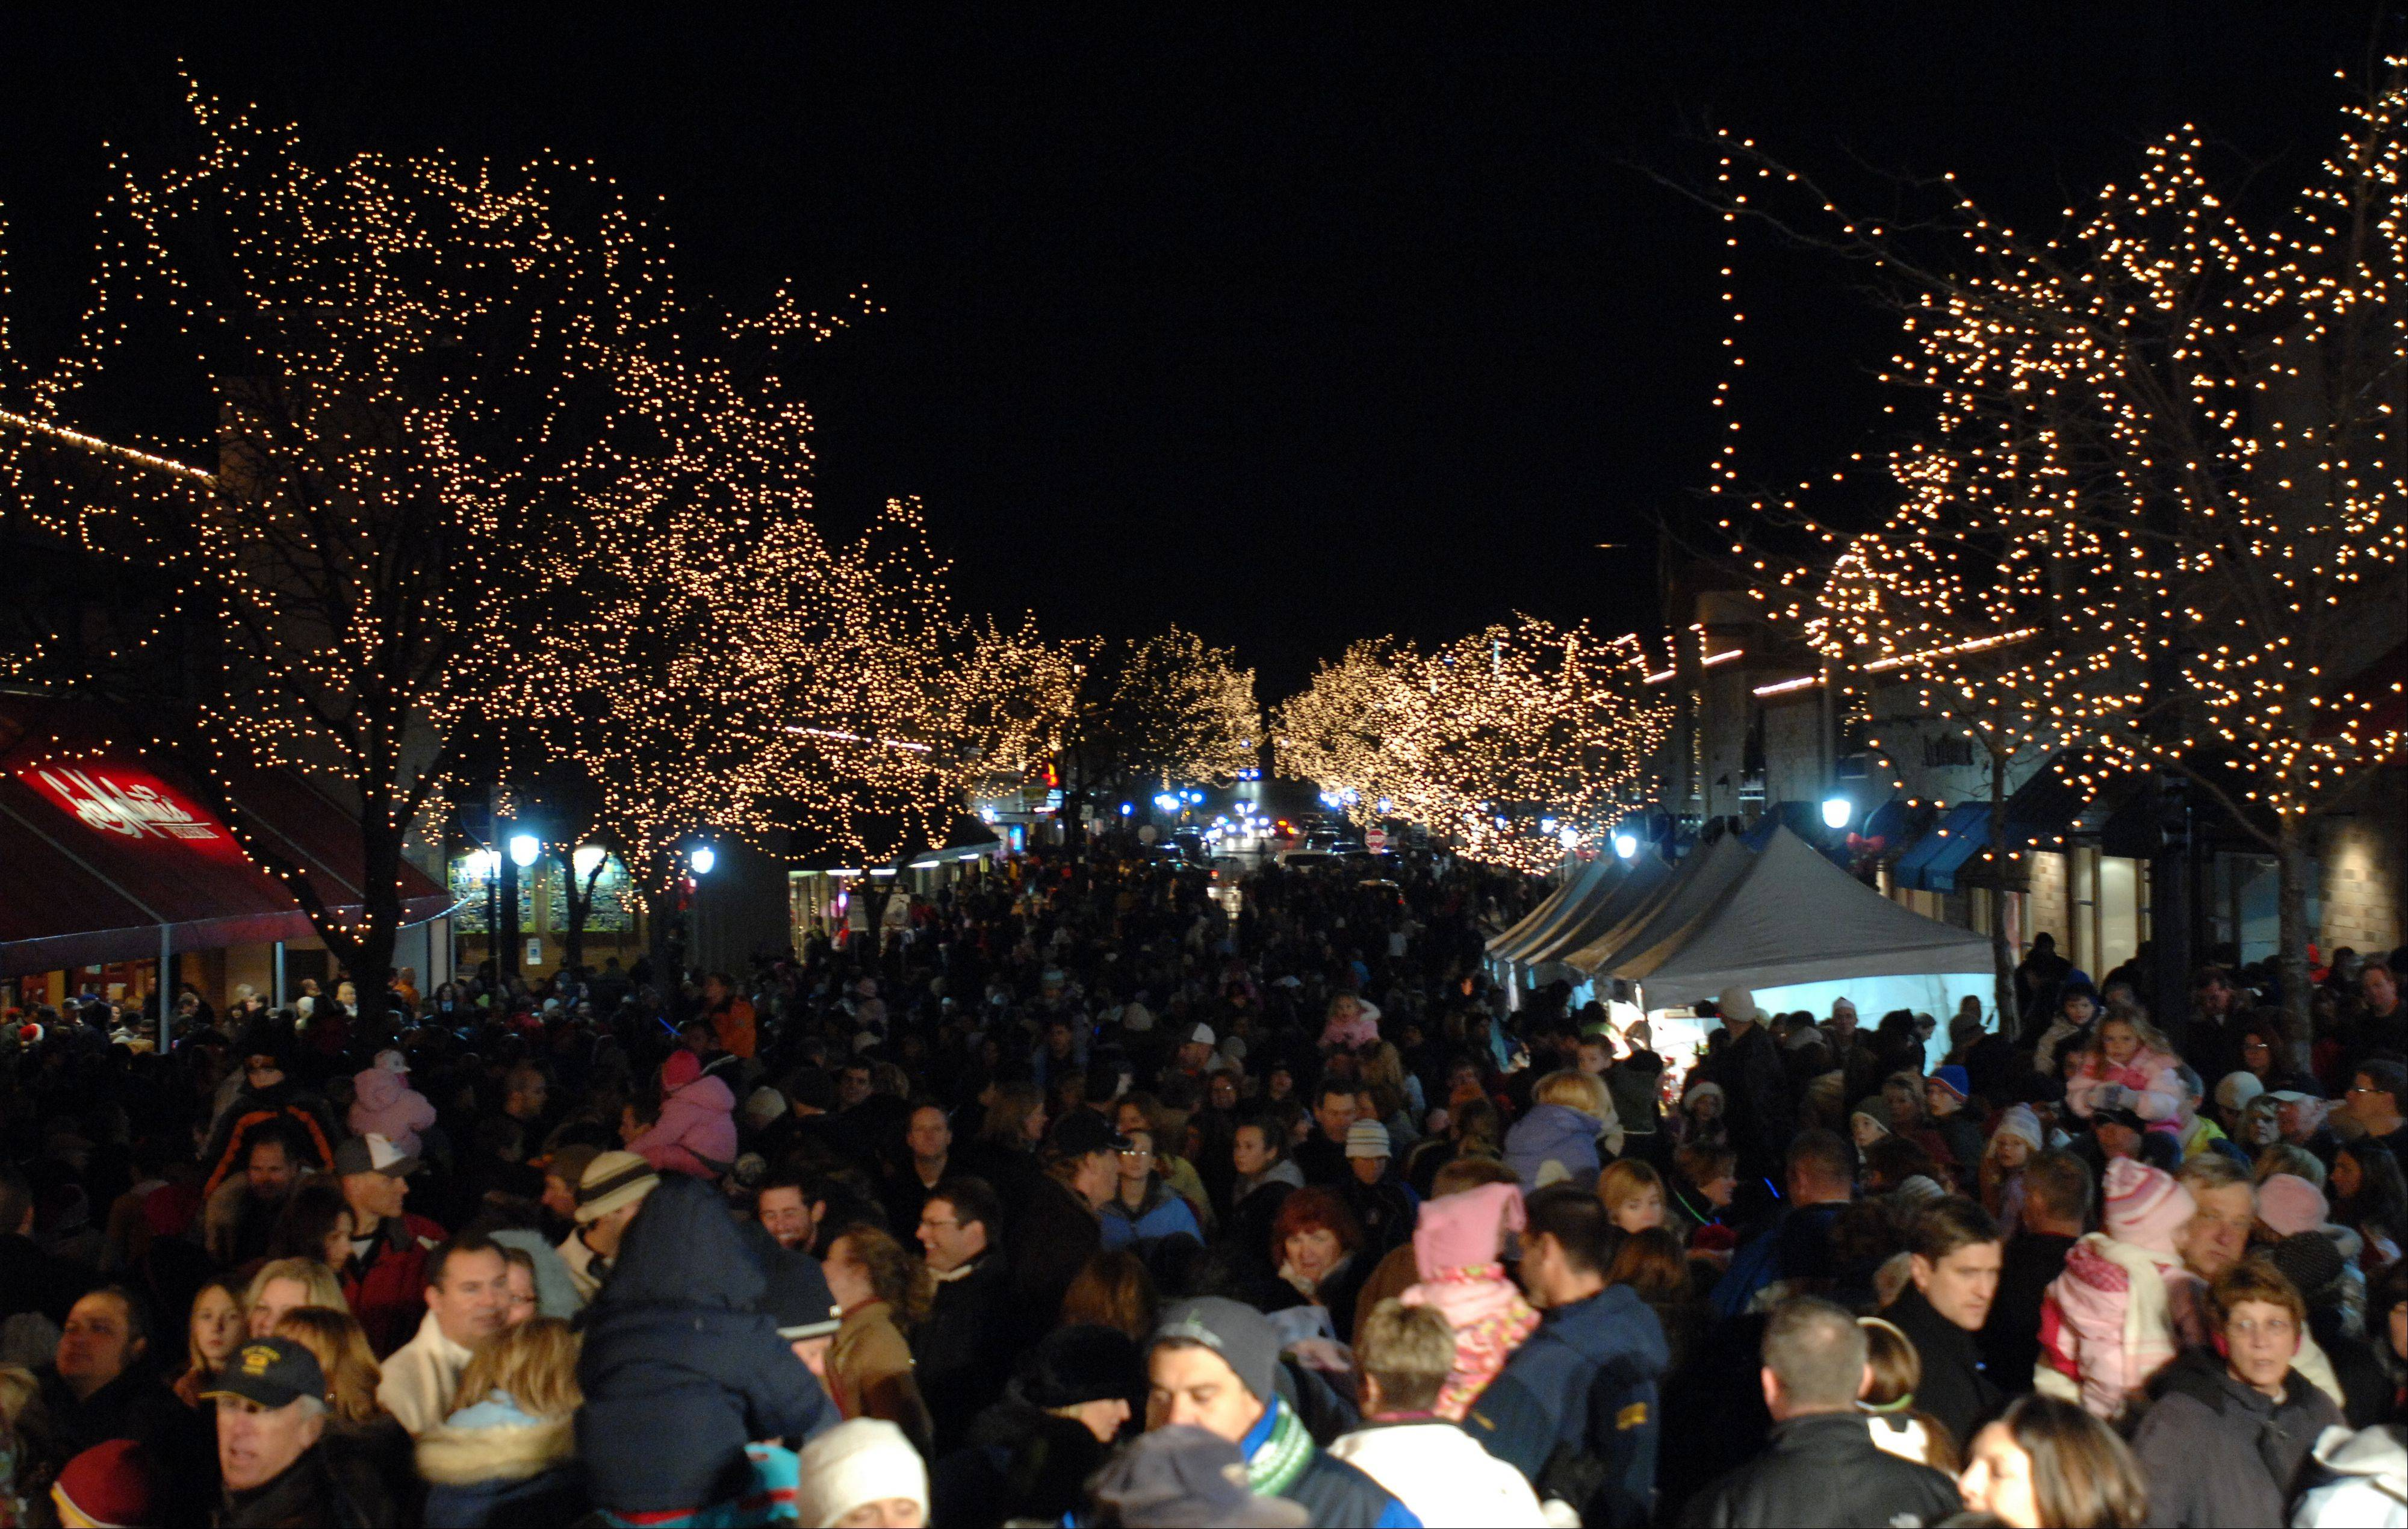 Large crowds have gathered in the past for ceremonies lighting up downtown Naperville for the holiday season. This year's Holiday Grand Illumination event was moved up about three weeks from its usual date after Thanksgiving to Friday, Nov. 8, to precede the inaugural Edward Hospital Naperville Marathon on Sunday.